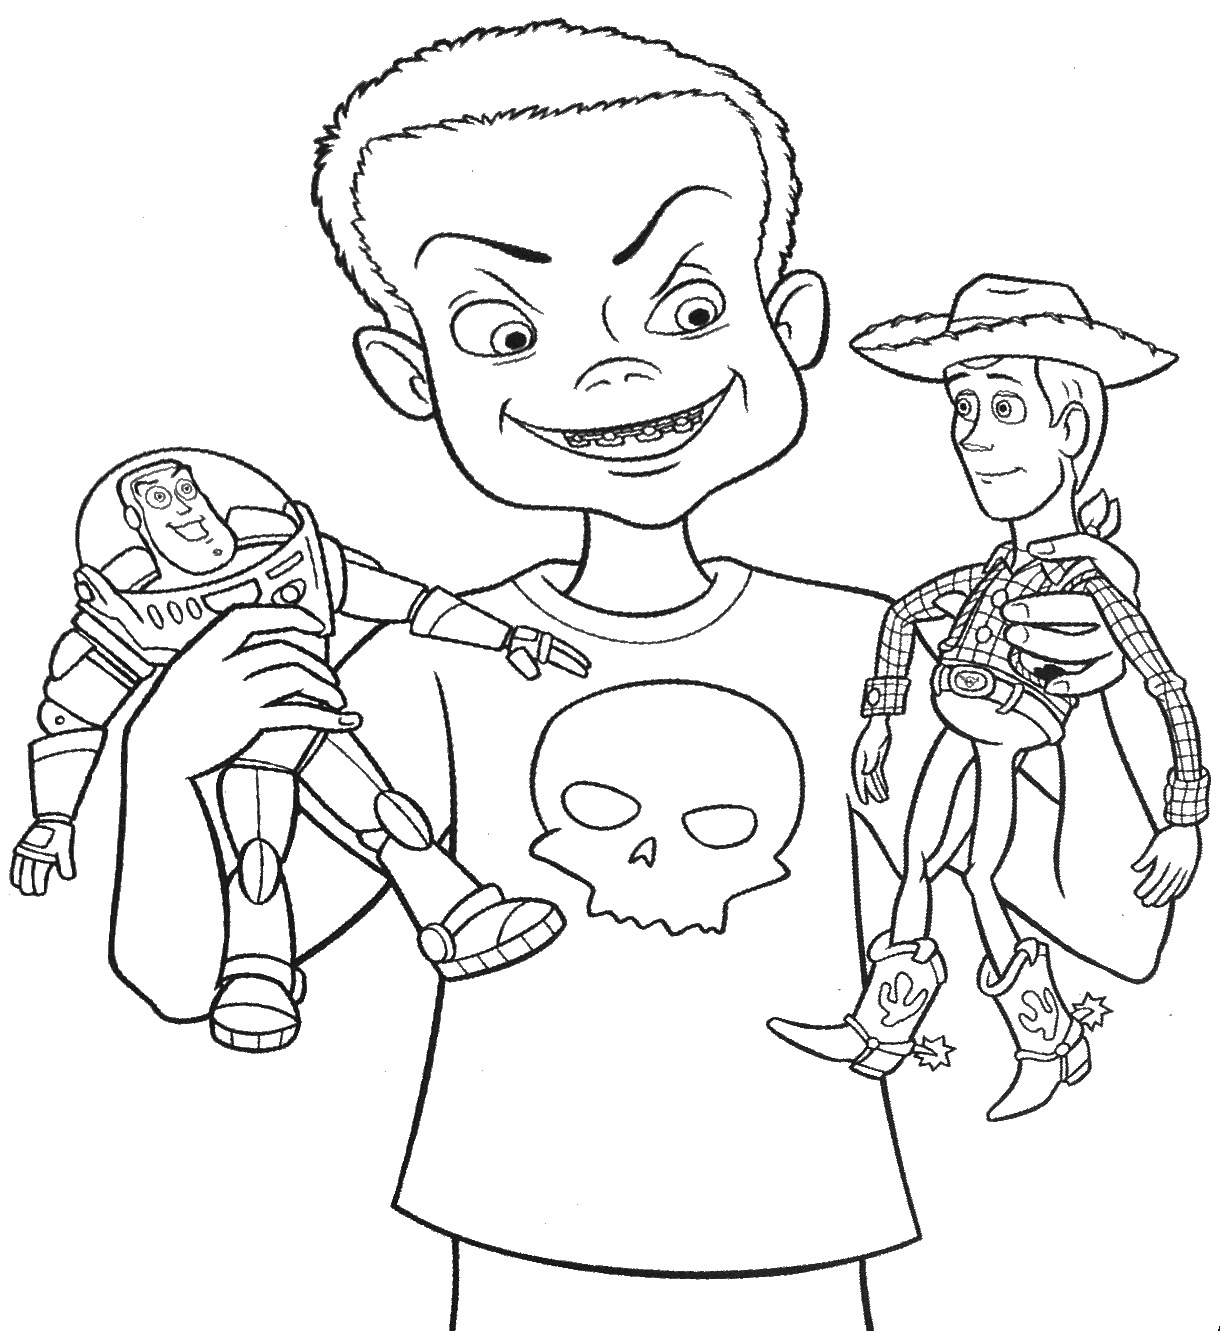 buzz toy story 4 coloring pages buzz lightyear coloring pages getcoloringpagescom 4 toy pages coloring buzz story